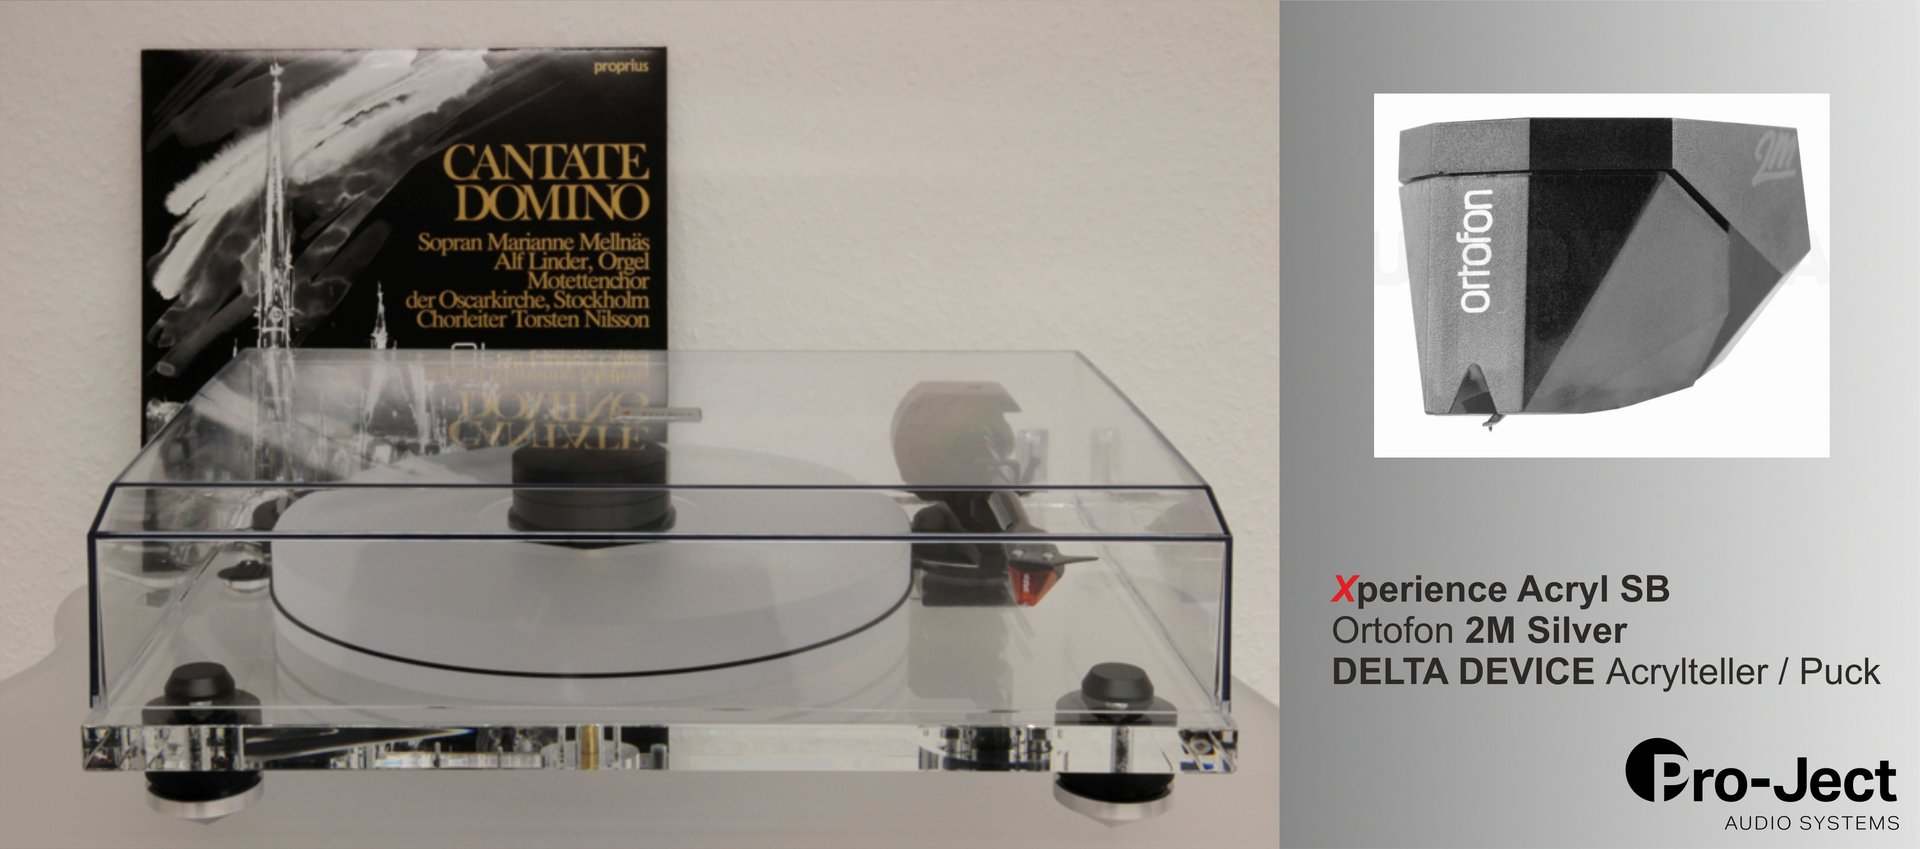 PRO-JECT Xperience ACRYL SB DeltaDevice Silver Edition Upgrade